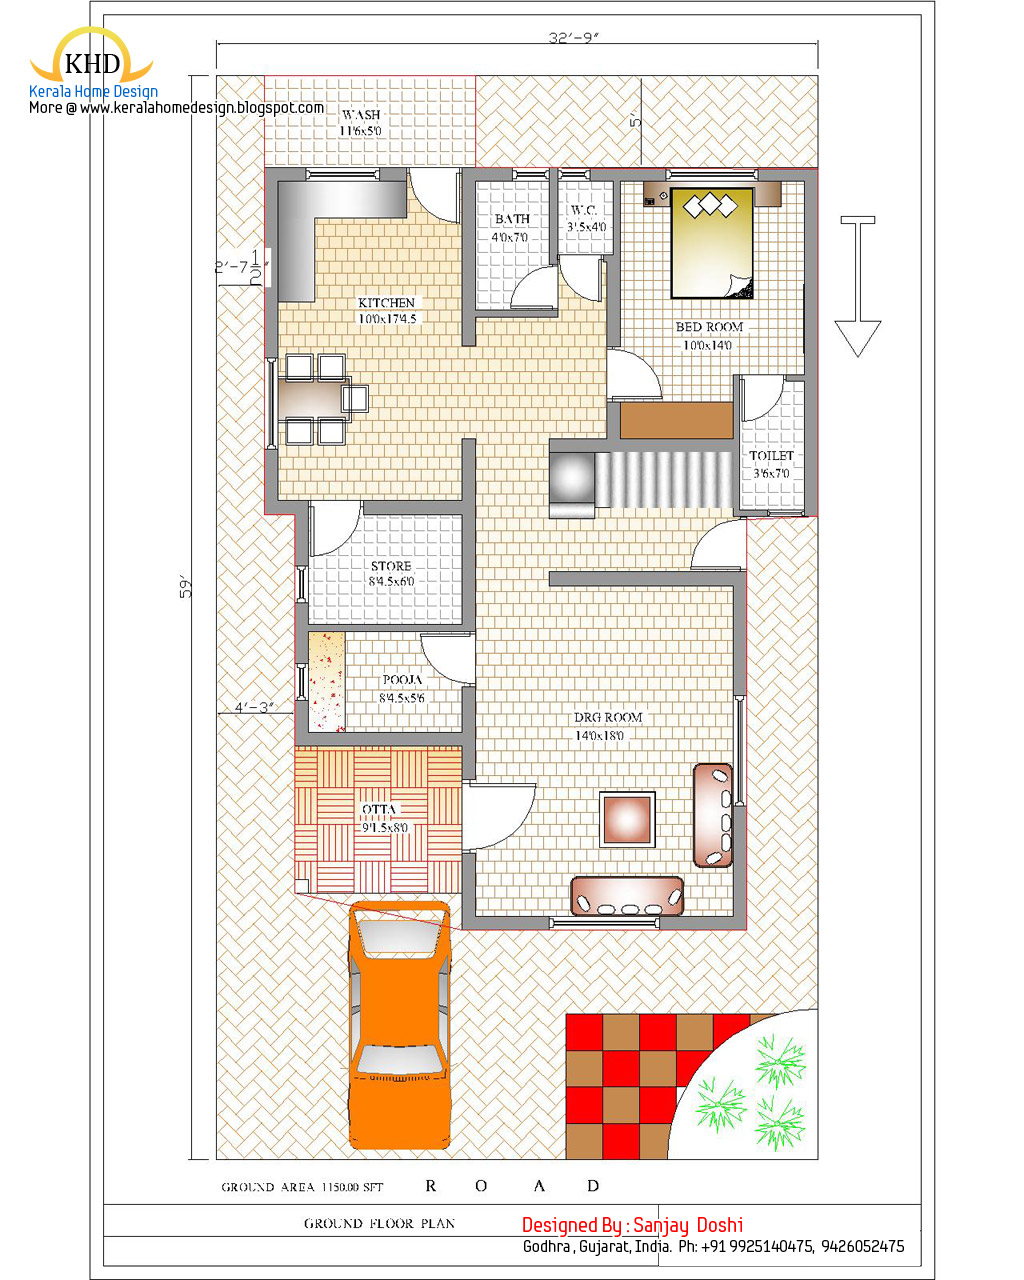 Duplex house plan and elevation ground floor plan 215 sq m 2310 sq